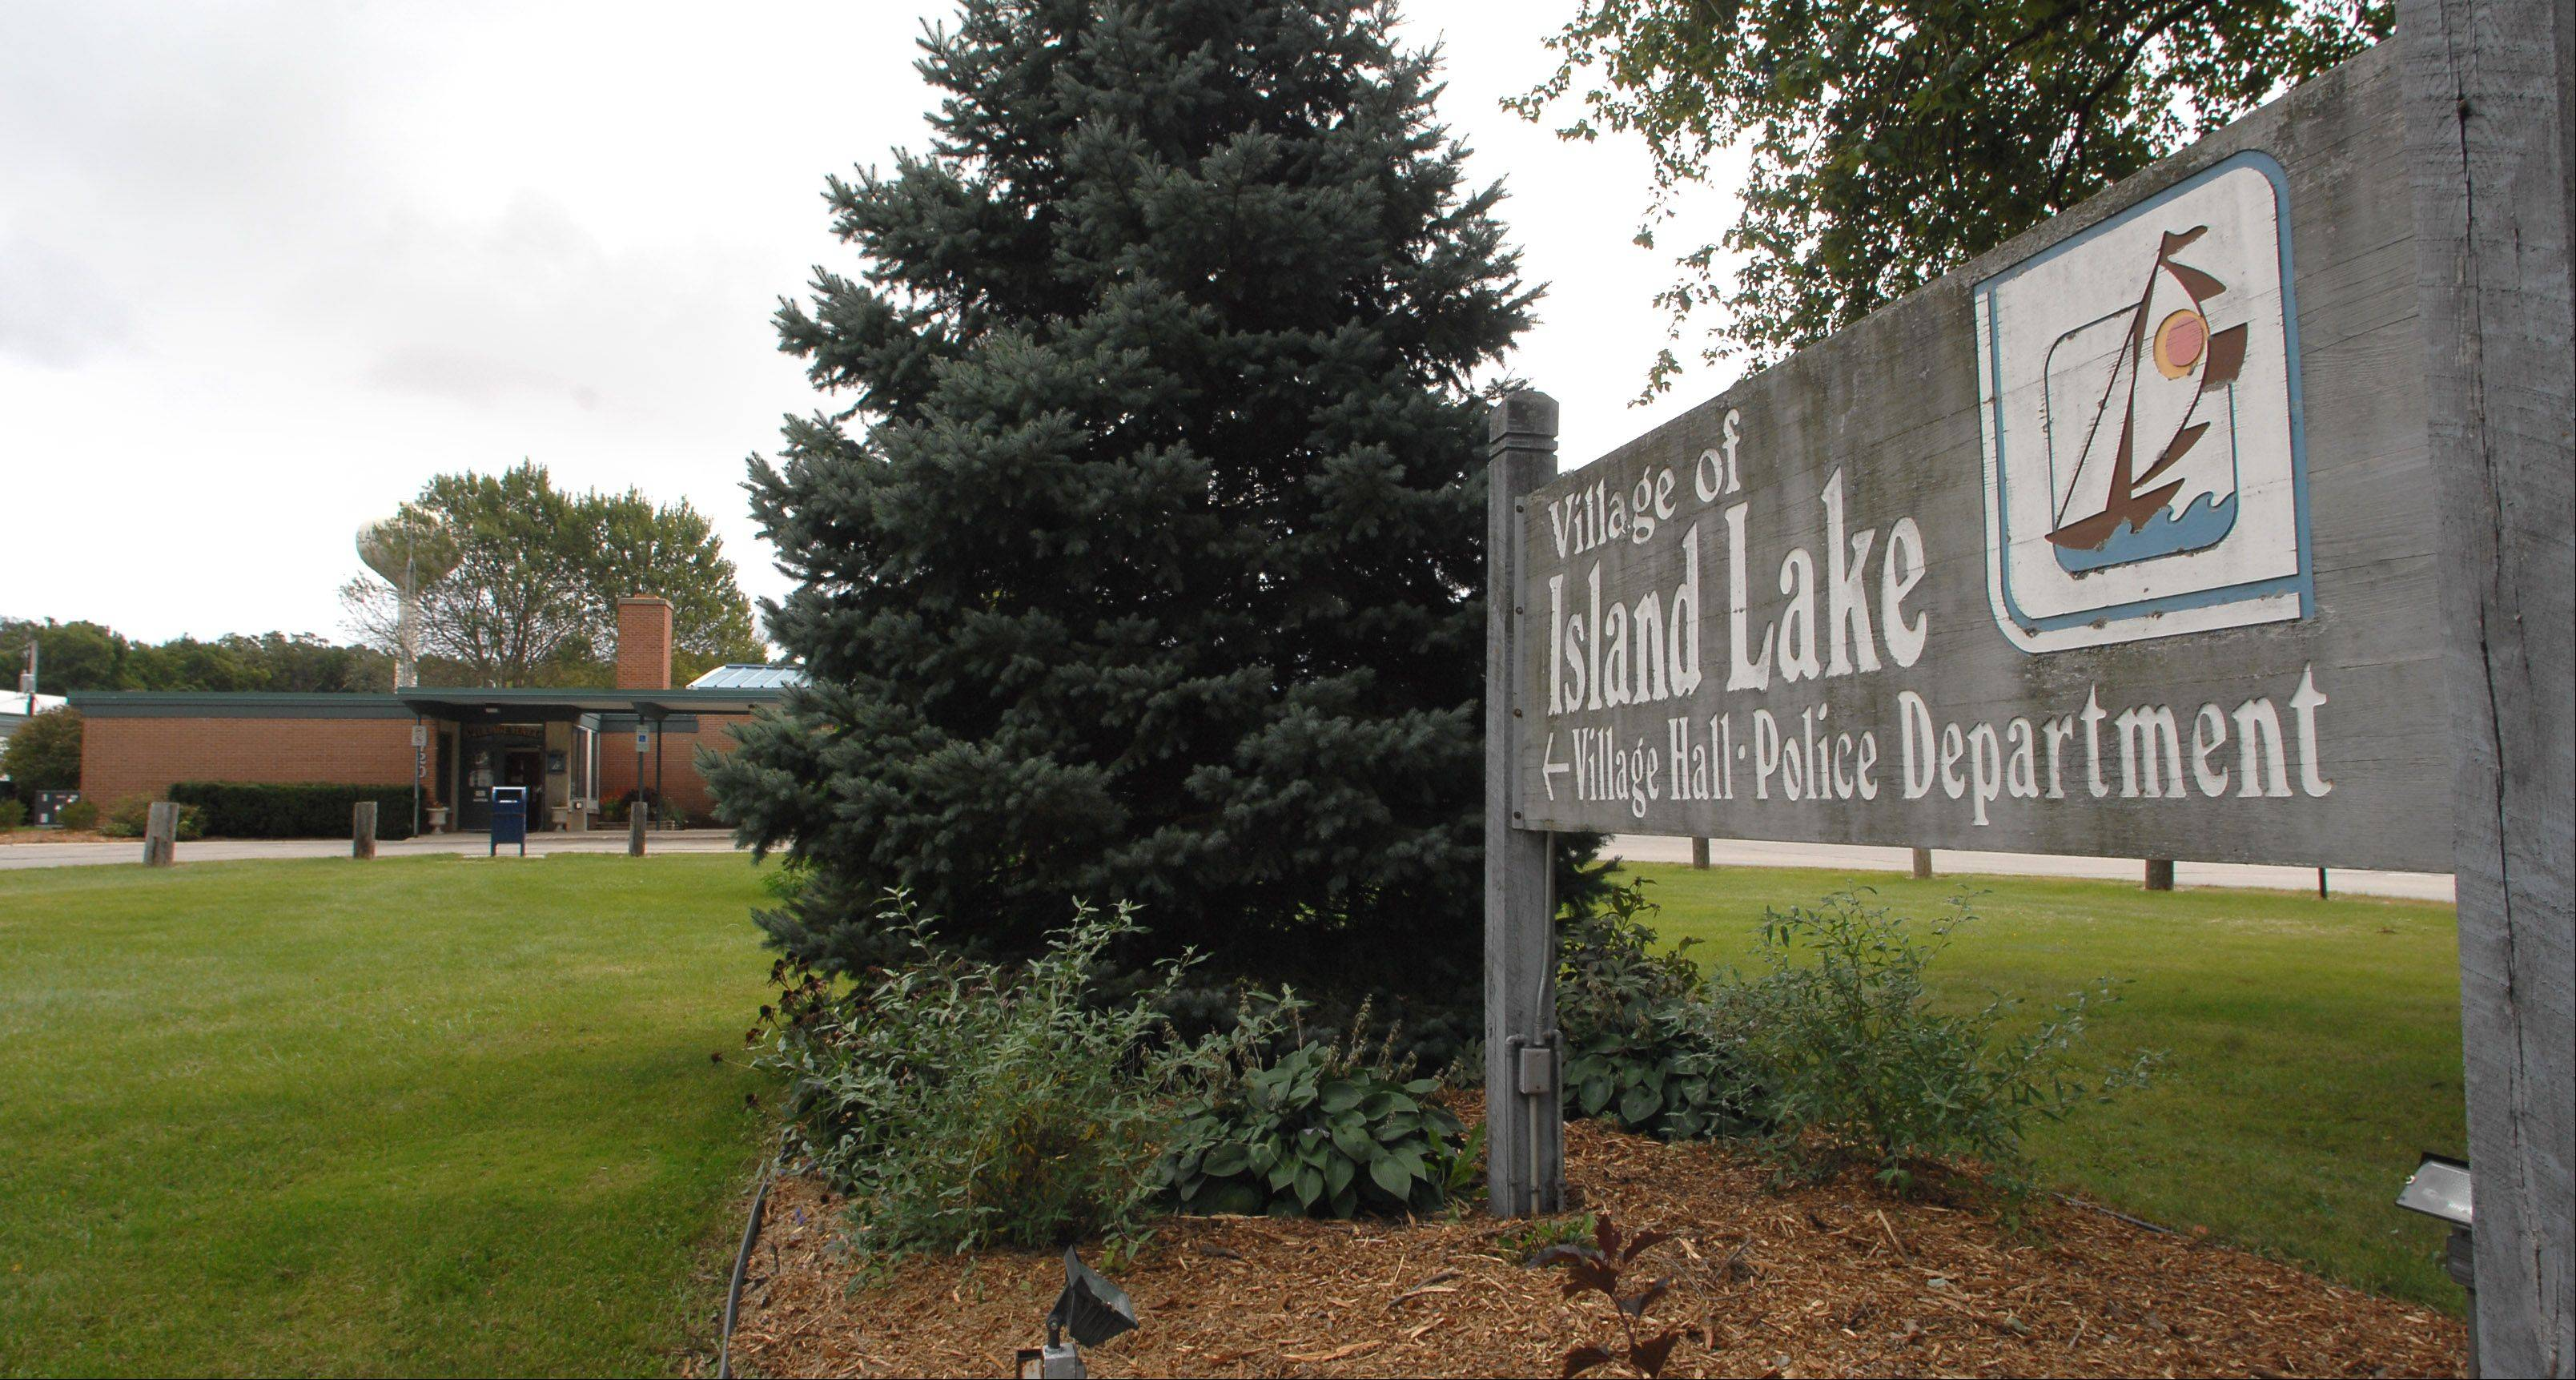 Island Lake political website pulled, will be retooled